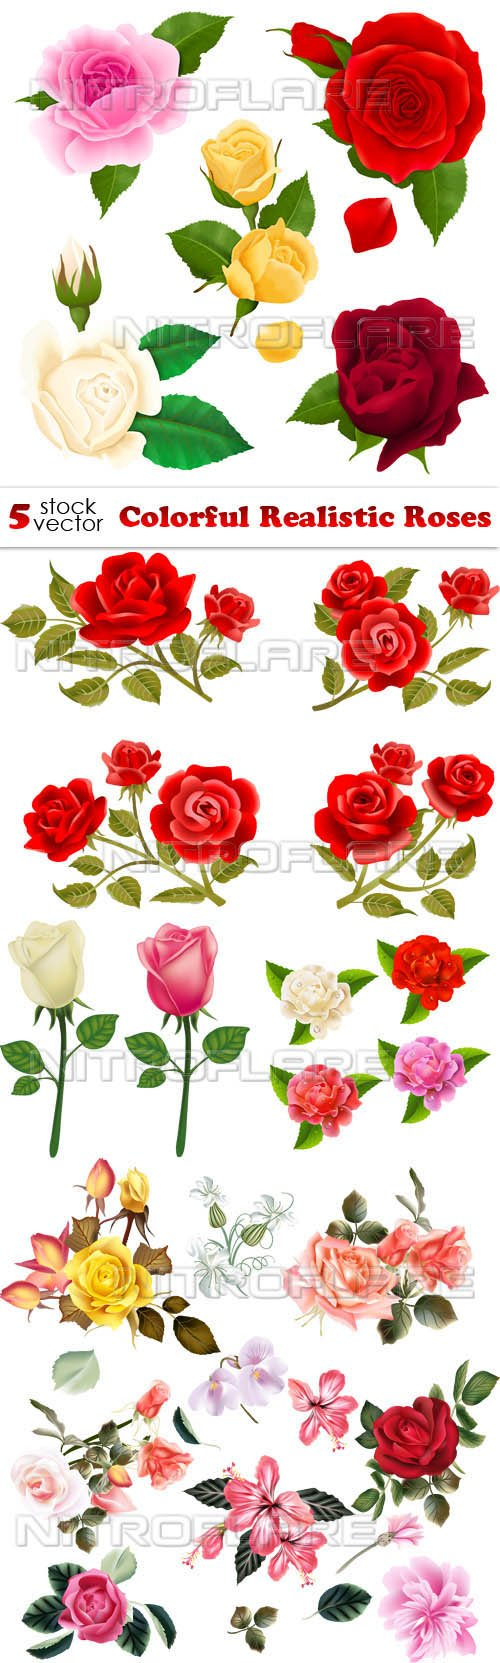 Vectors - Colorful Realistic Roses